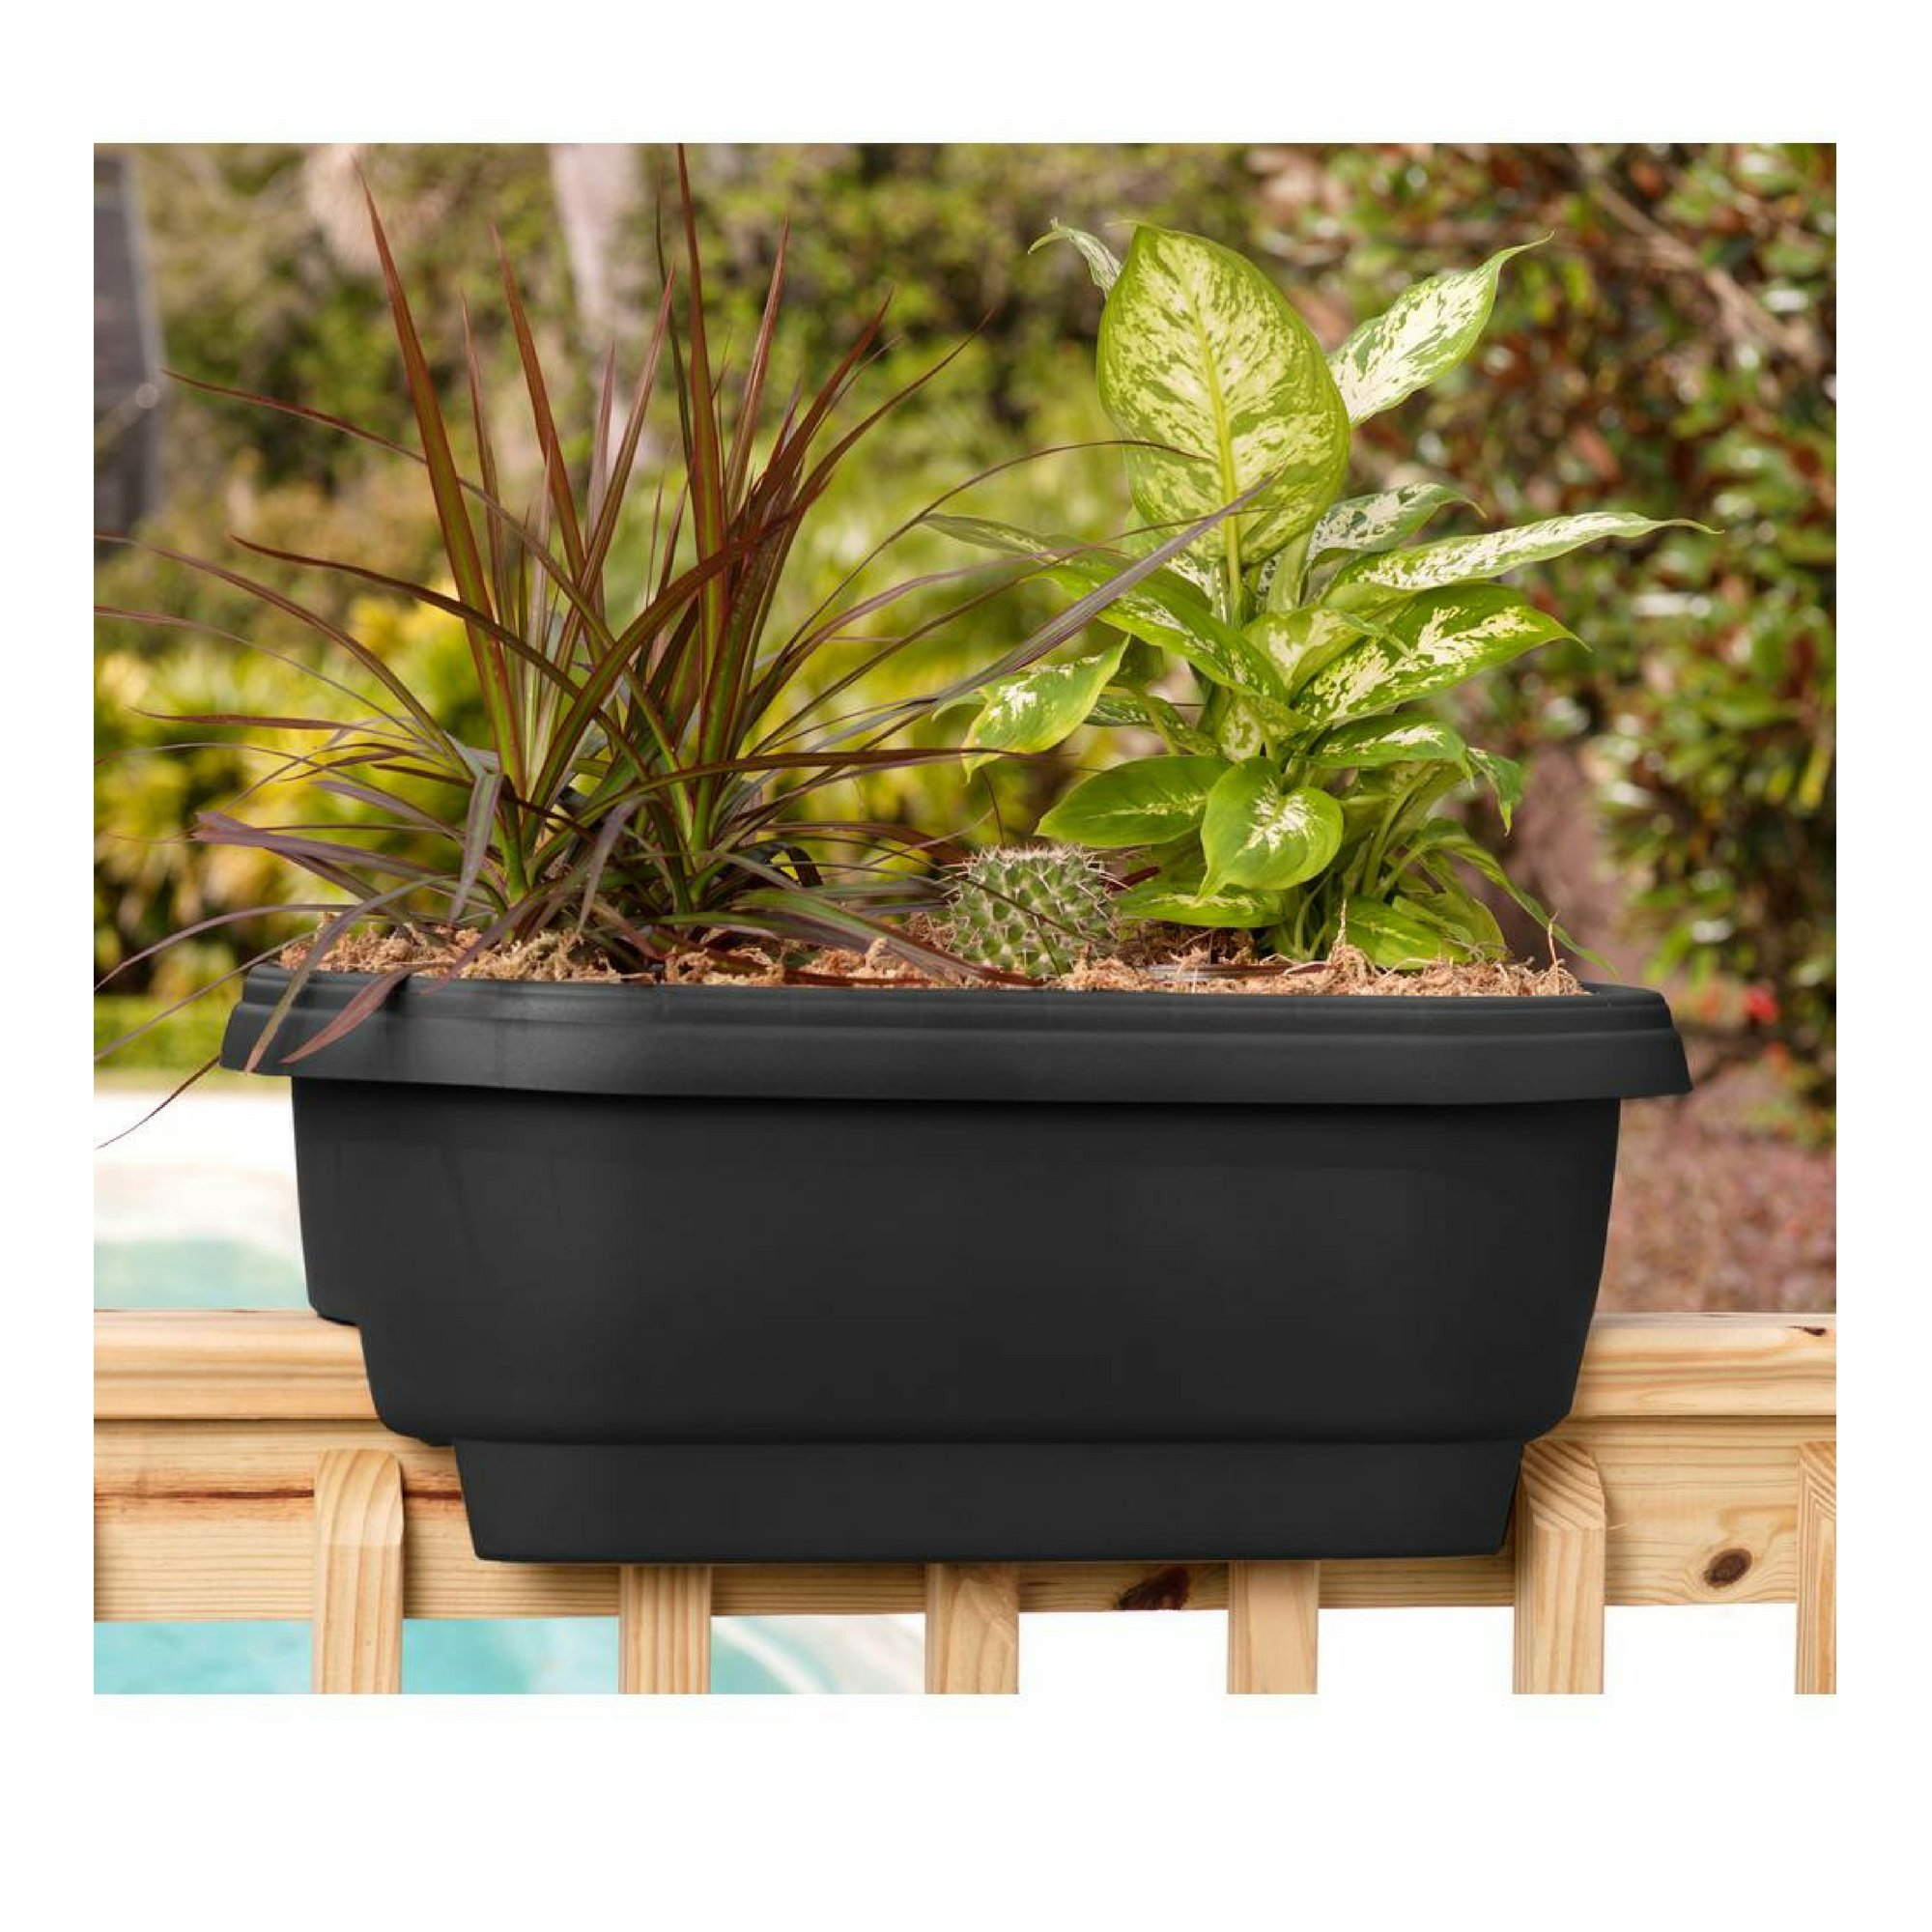 Bloem Deck 24 in. Balcony Rail Planter in Black - 1 Pack by Bloem